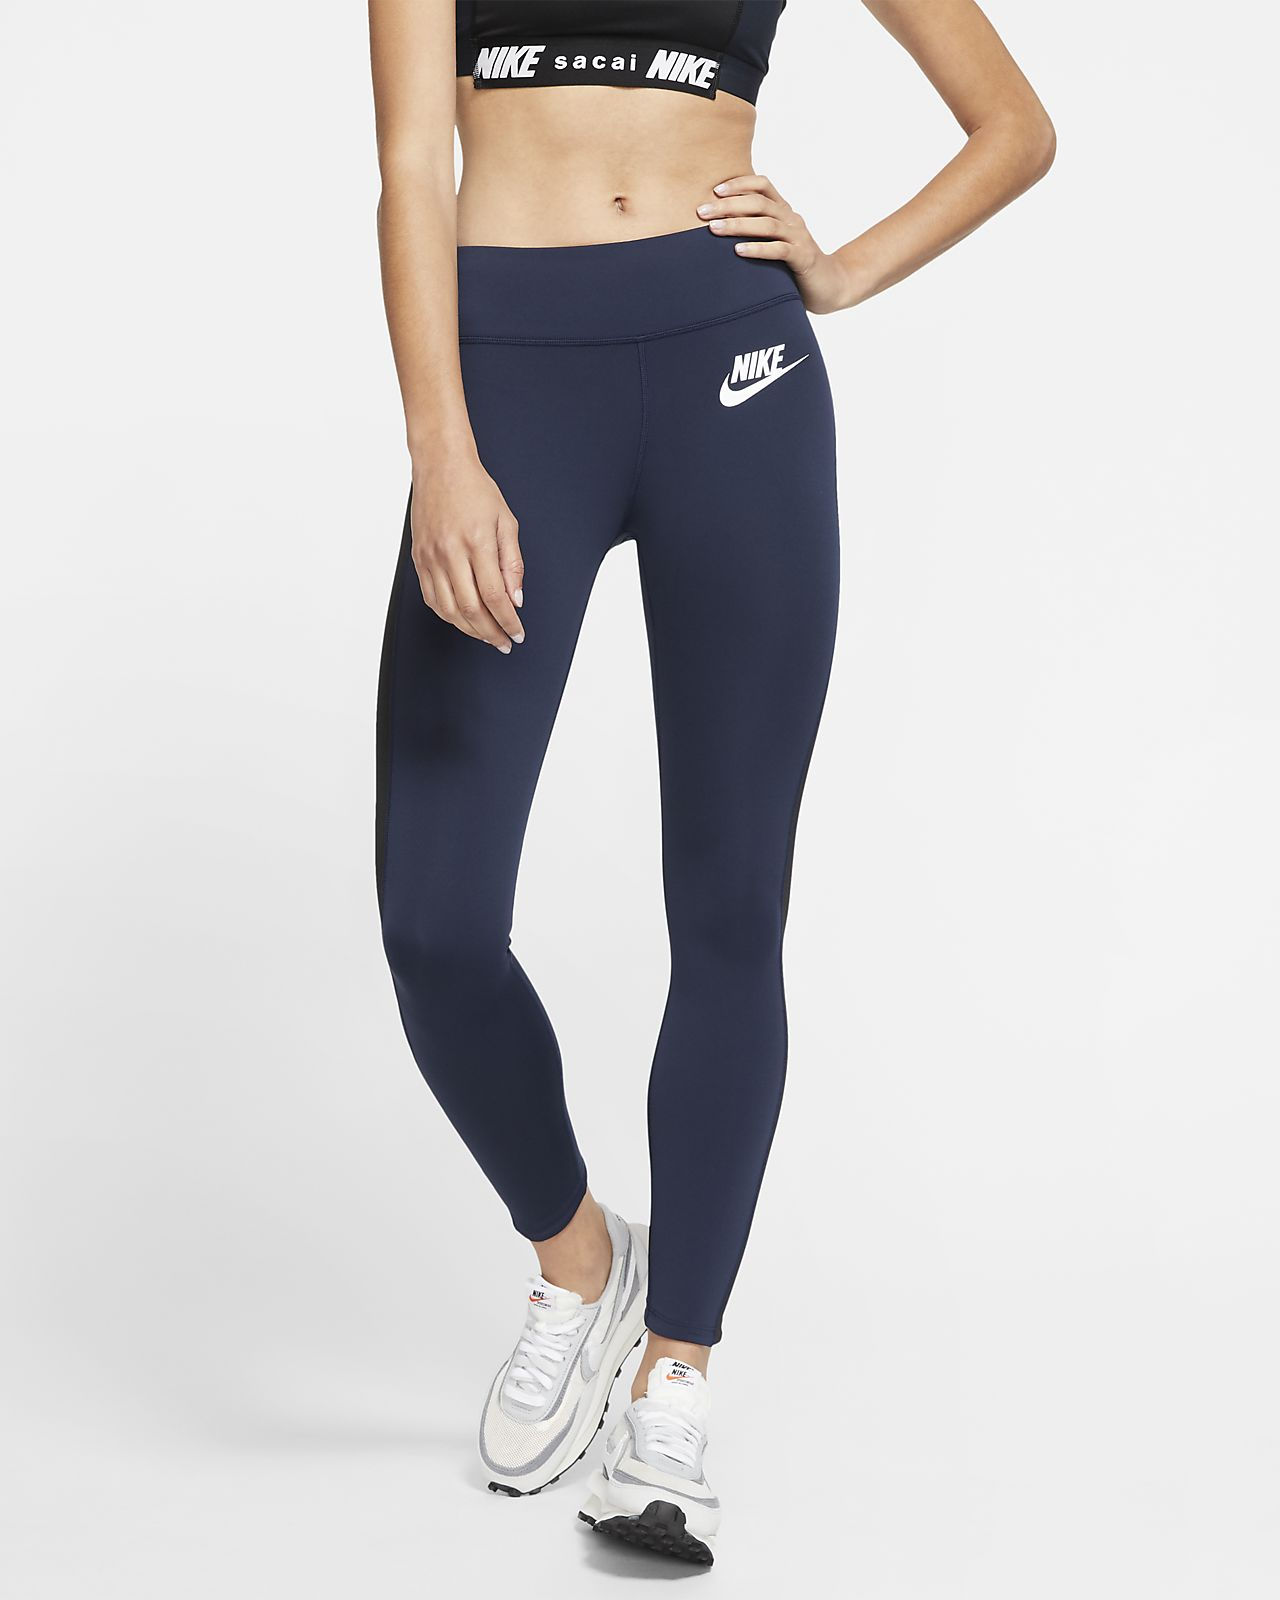 Nike x Sacai Women's Running Tights